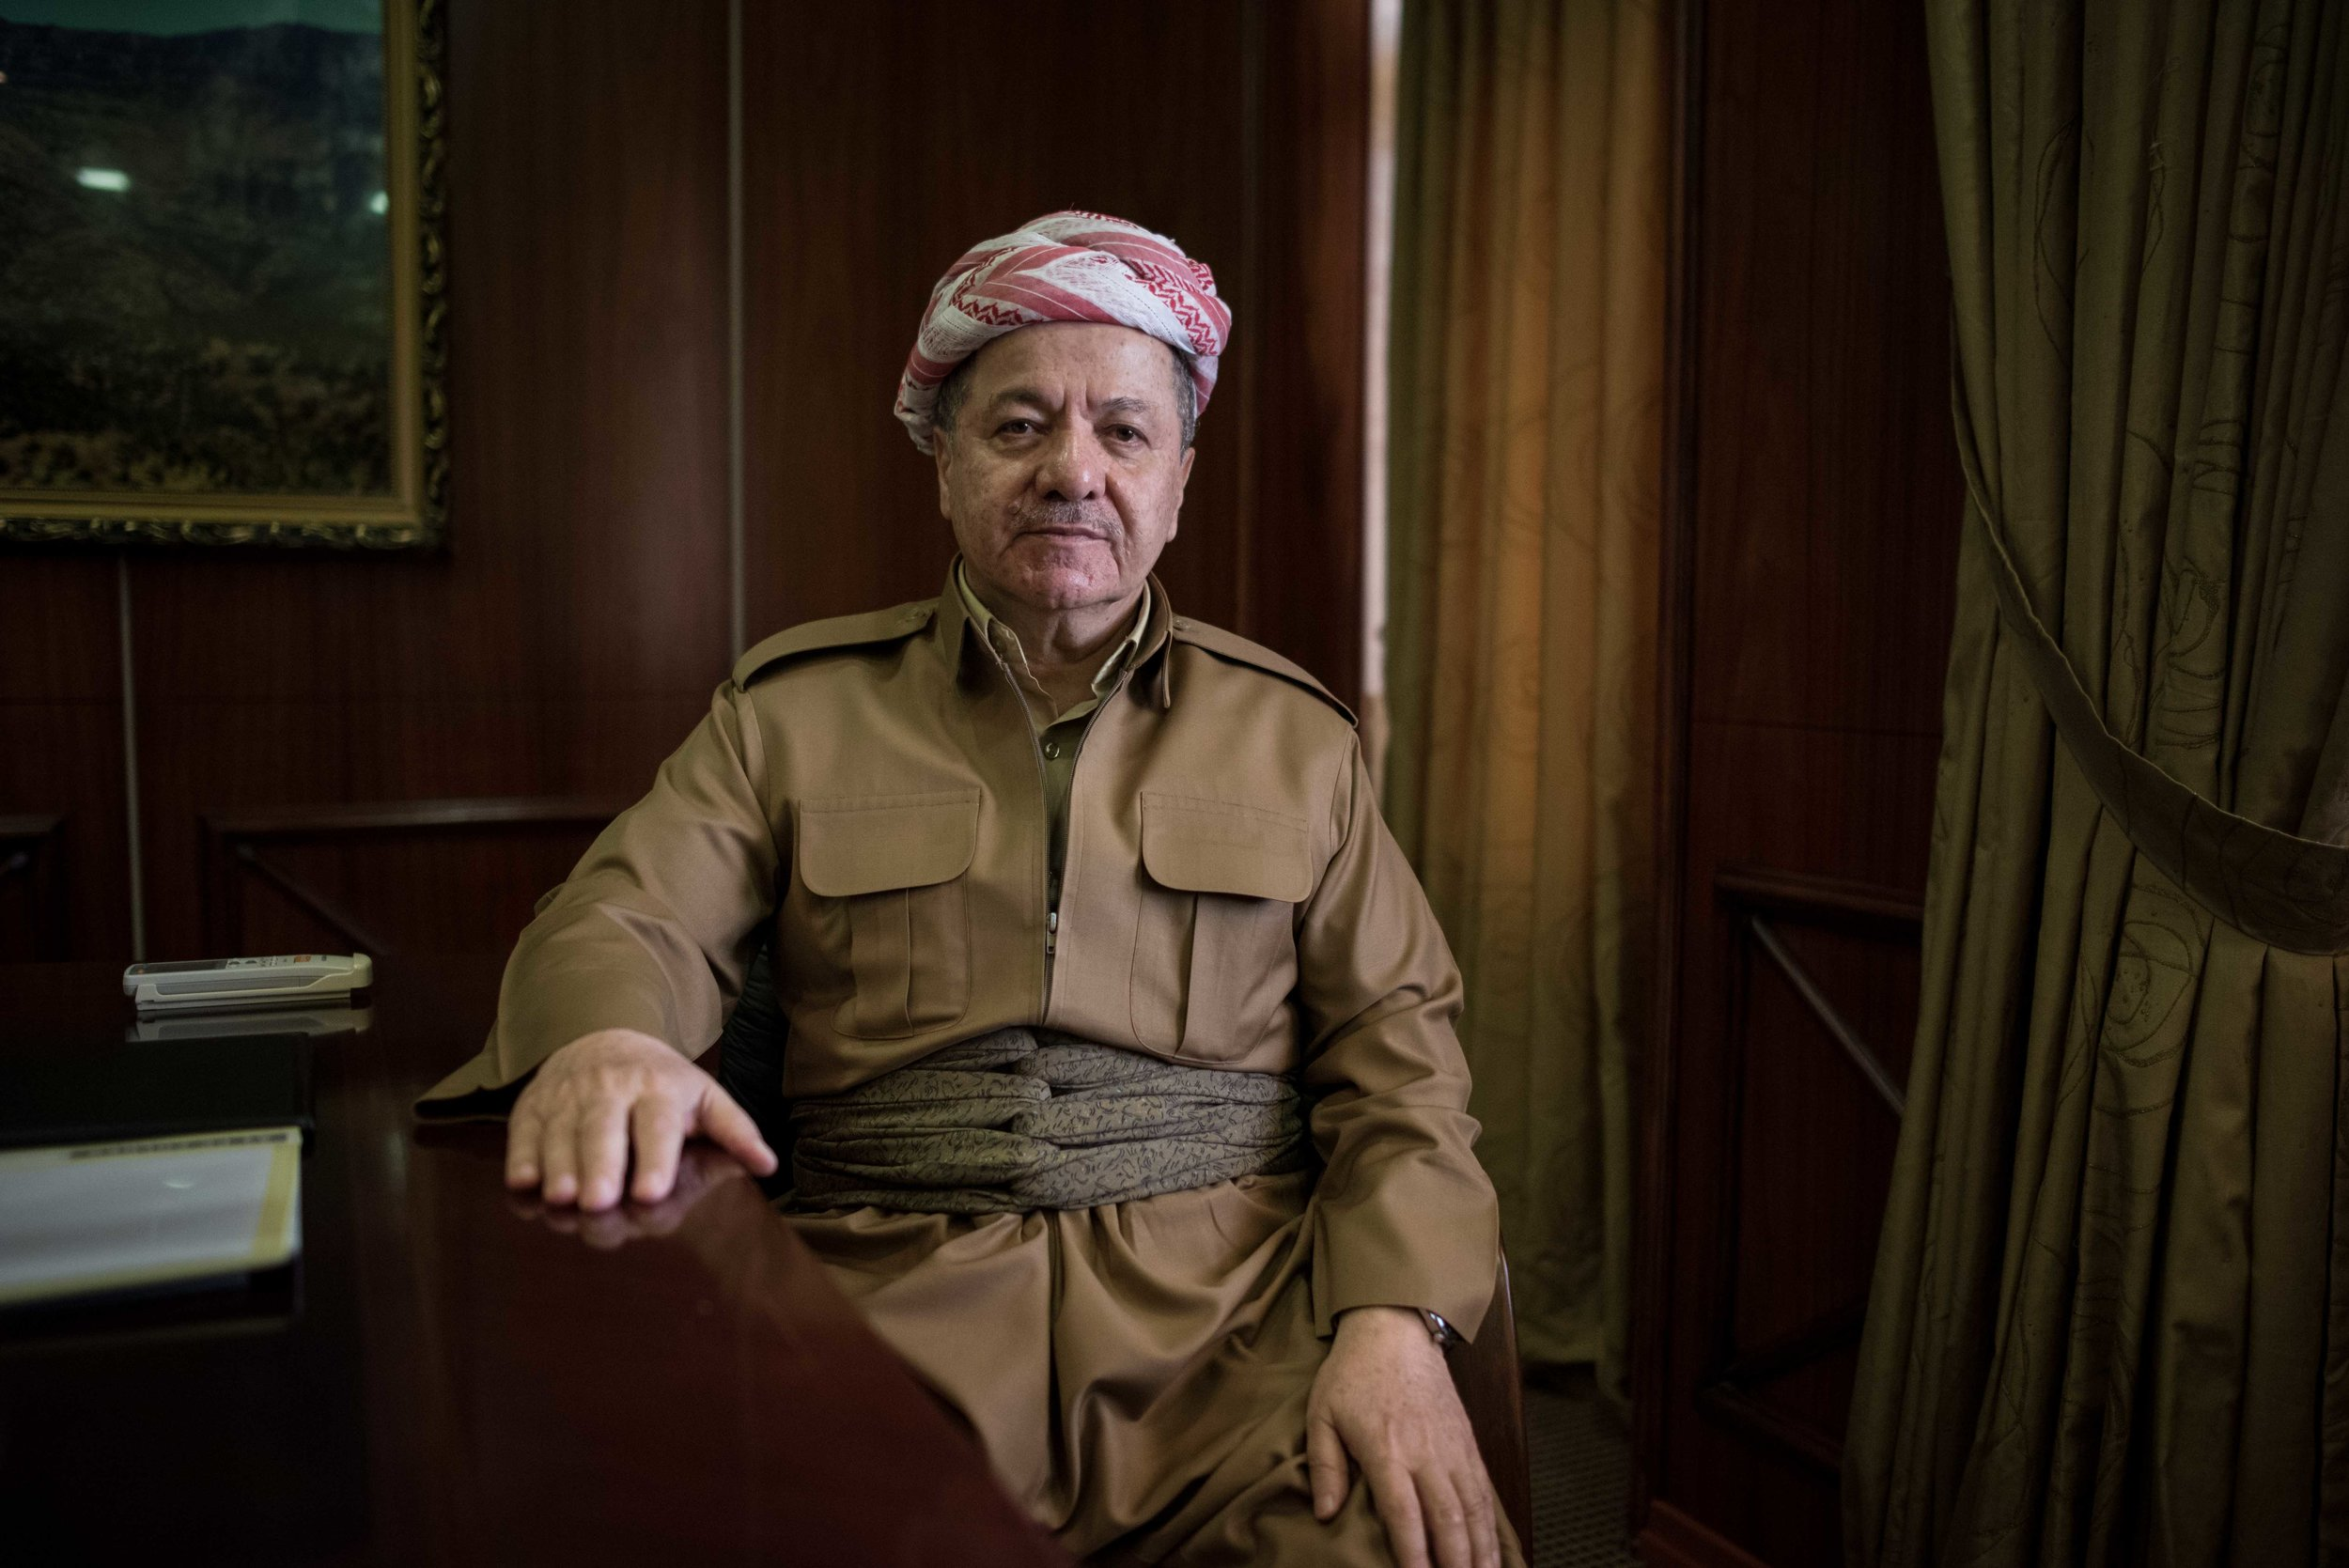 'I WANT TO DIE IN THE SHADOW OF THE FLAG OF AN INDEPENDENT KURDISTAN'  An independence referendum is Masoud Barzani's last big gamble as president of Iraq's Kurdistan Region -  Foreign Policy